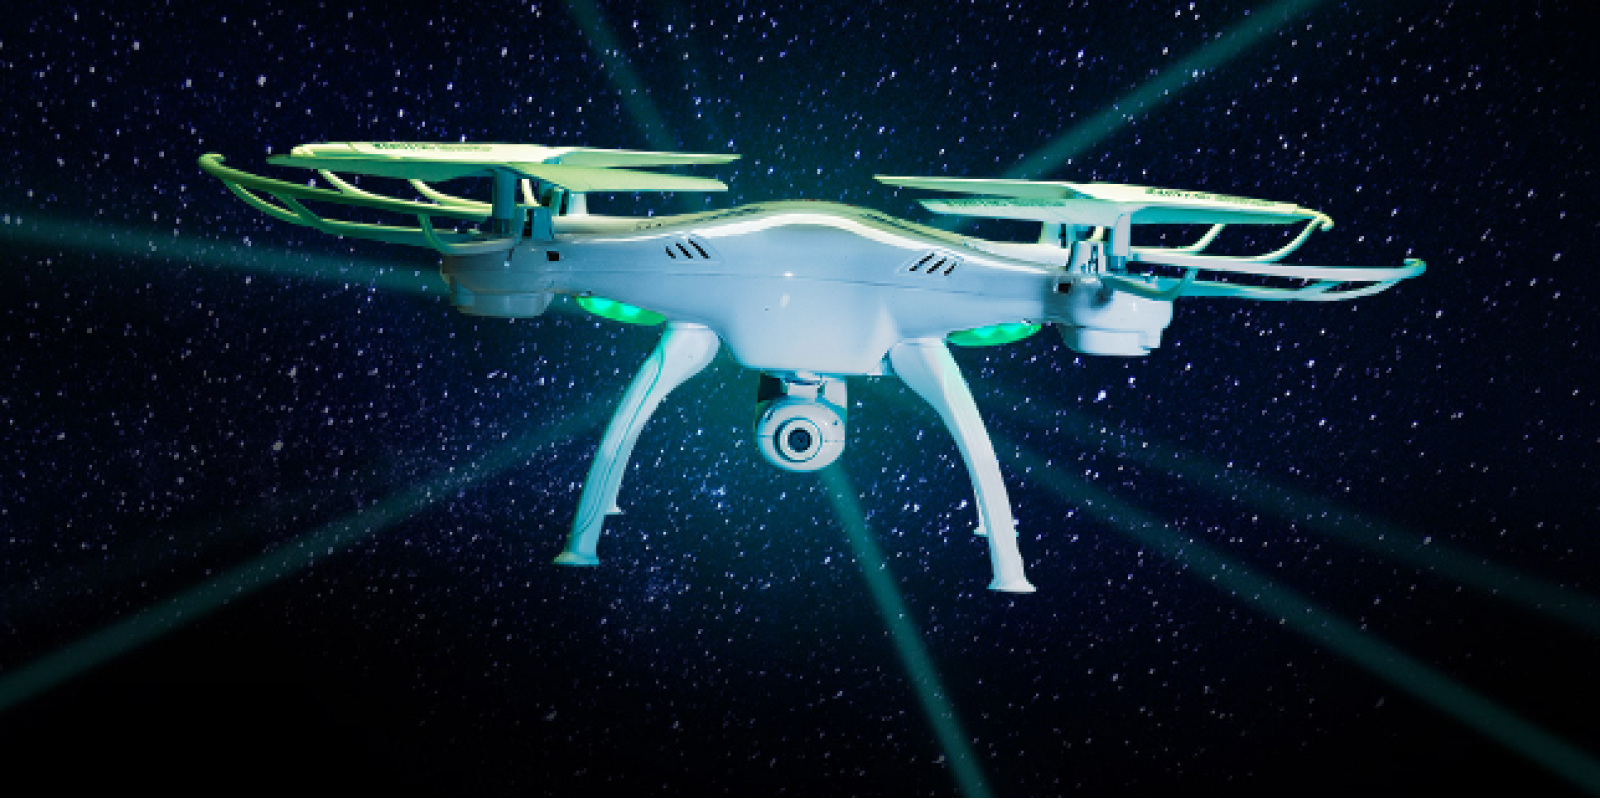 Wilo Experts Drone